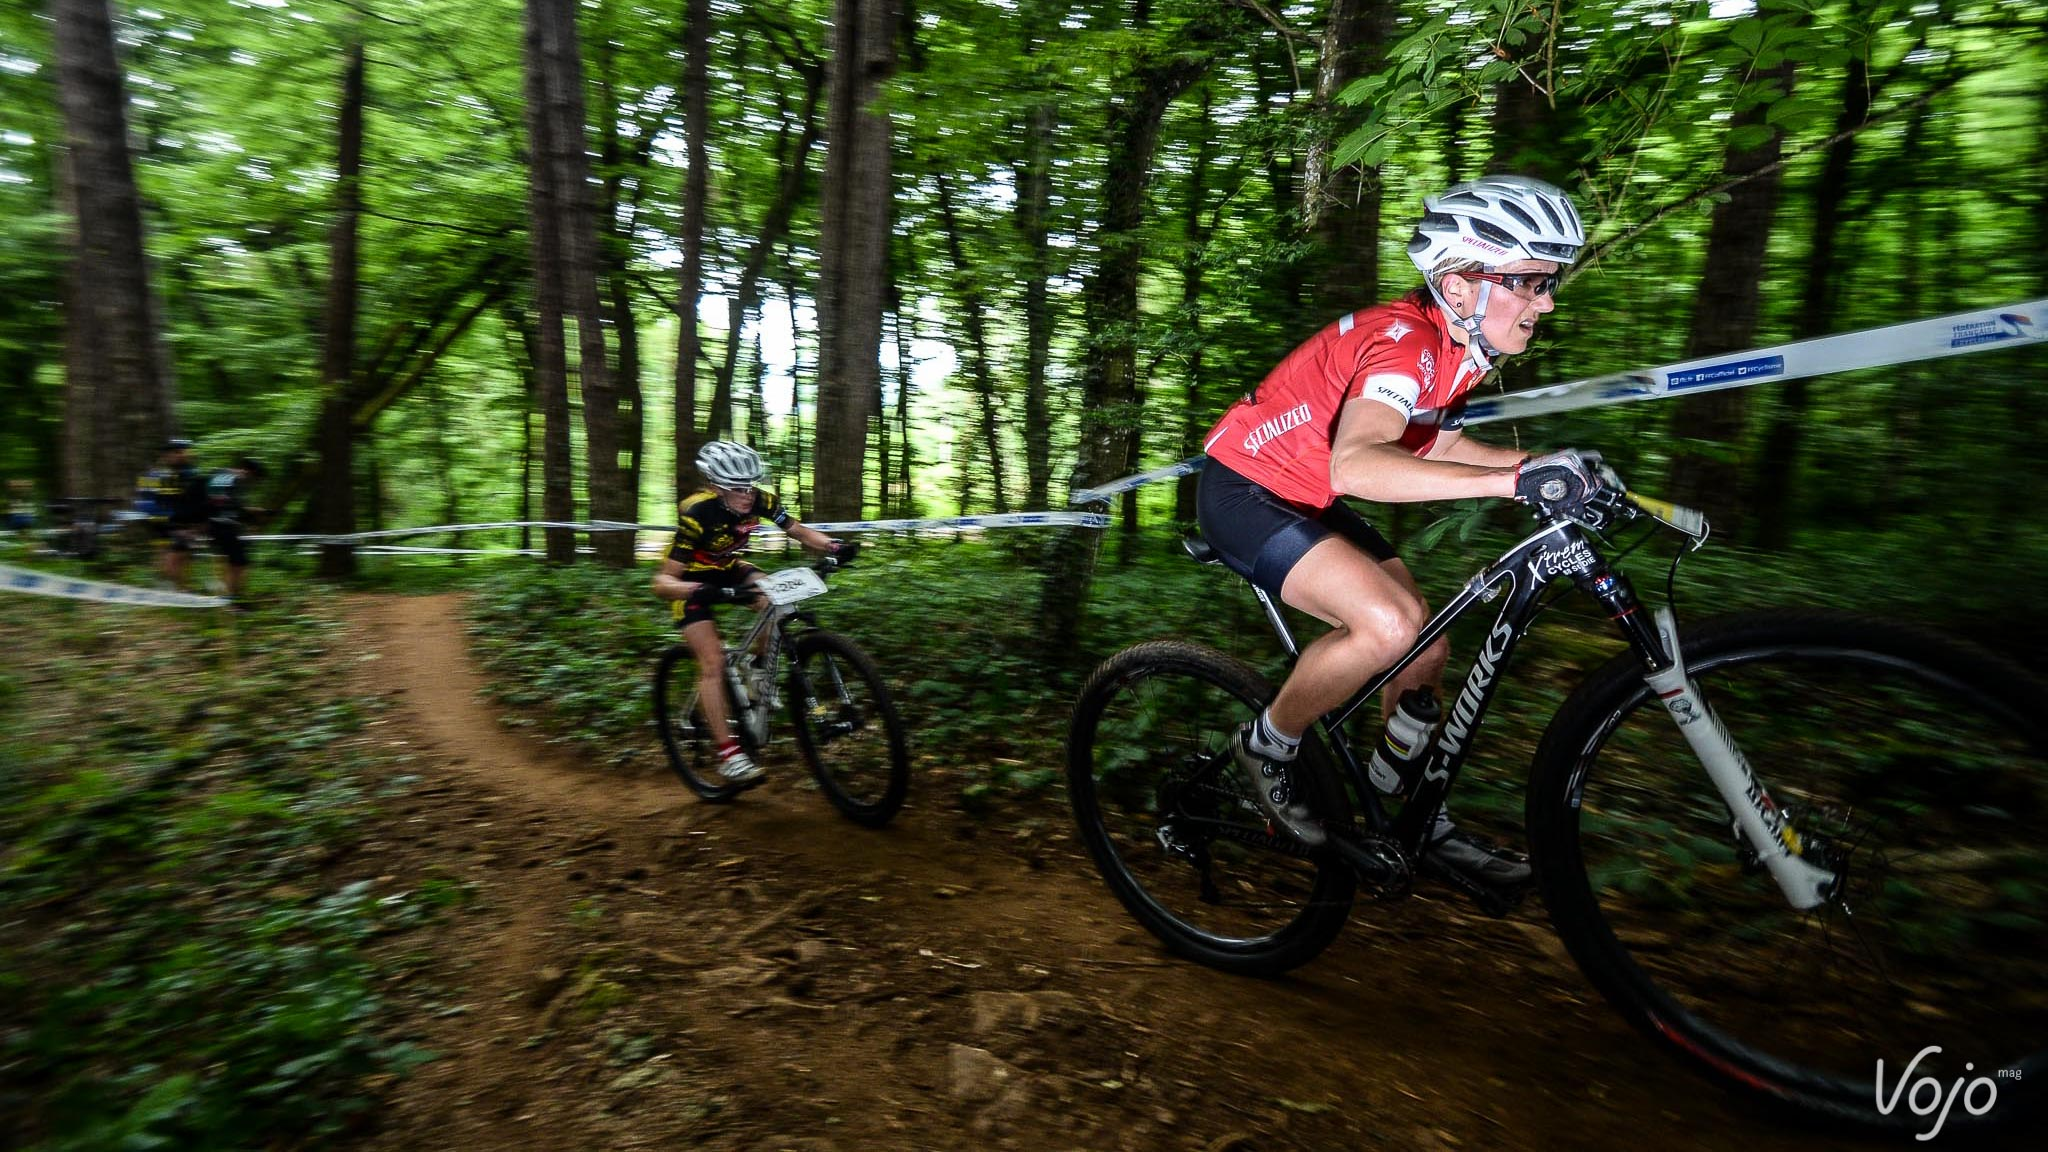 Coupe_France_VTT_Lons_le_Saunier_Clauzel_Metzler_Enaux_Copyright_Romain_Laurent_VojoMag-4